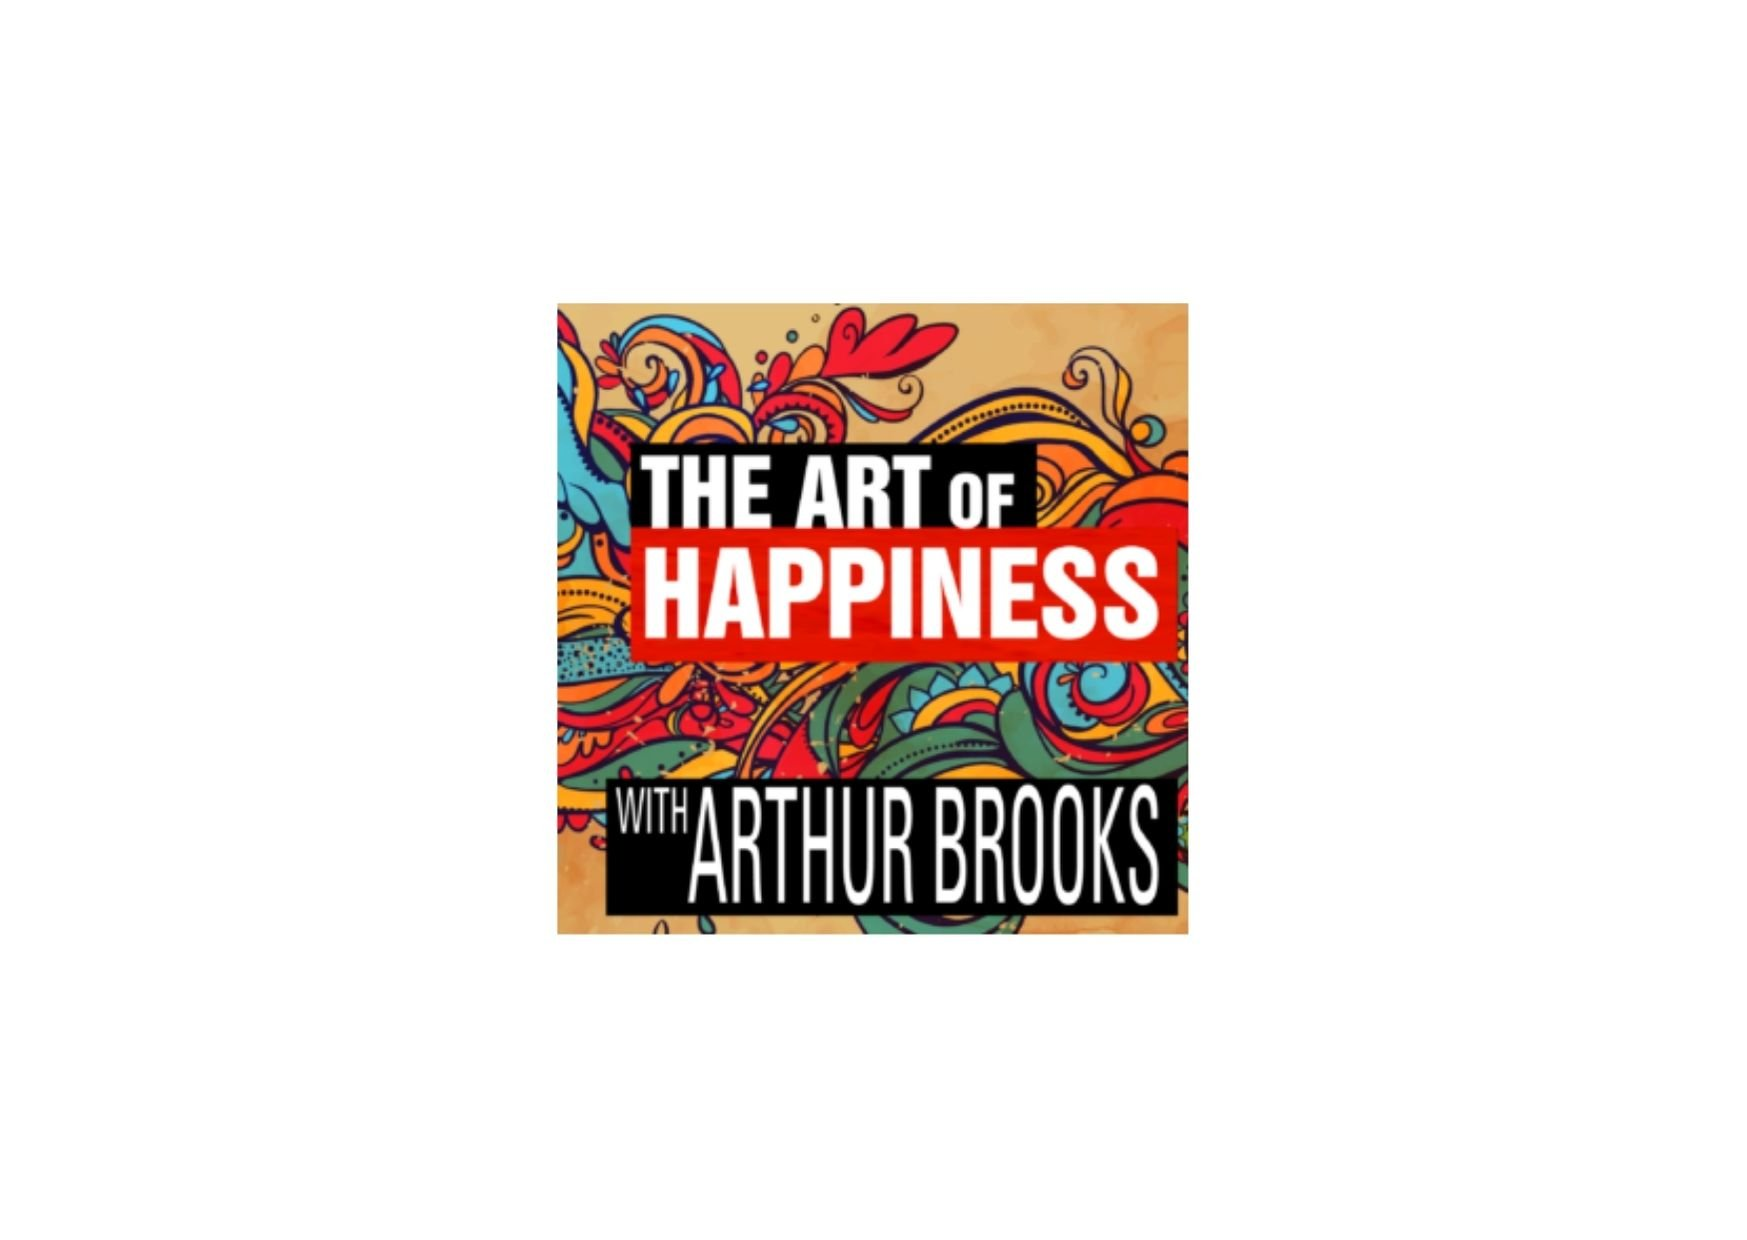 Noreena Hertz on The Art of Happiness with Arthur Brooks